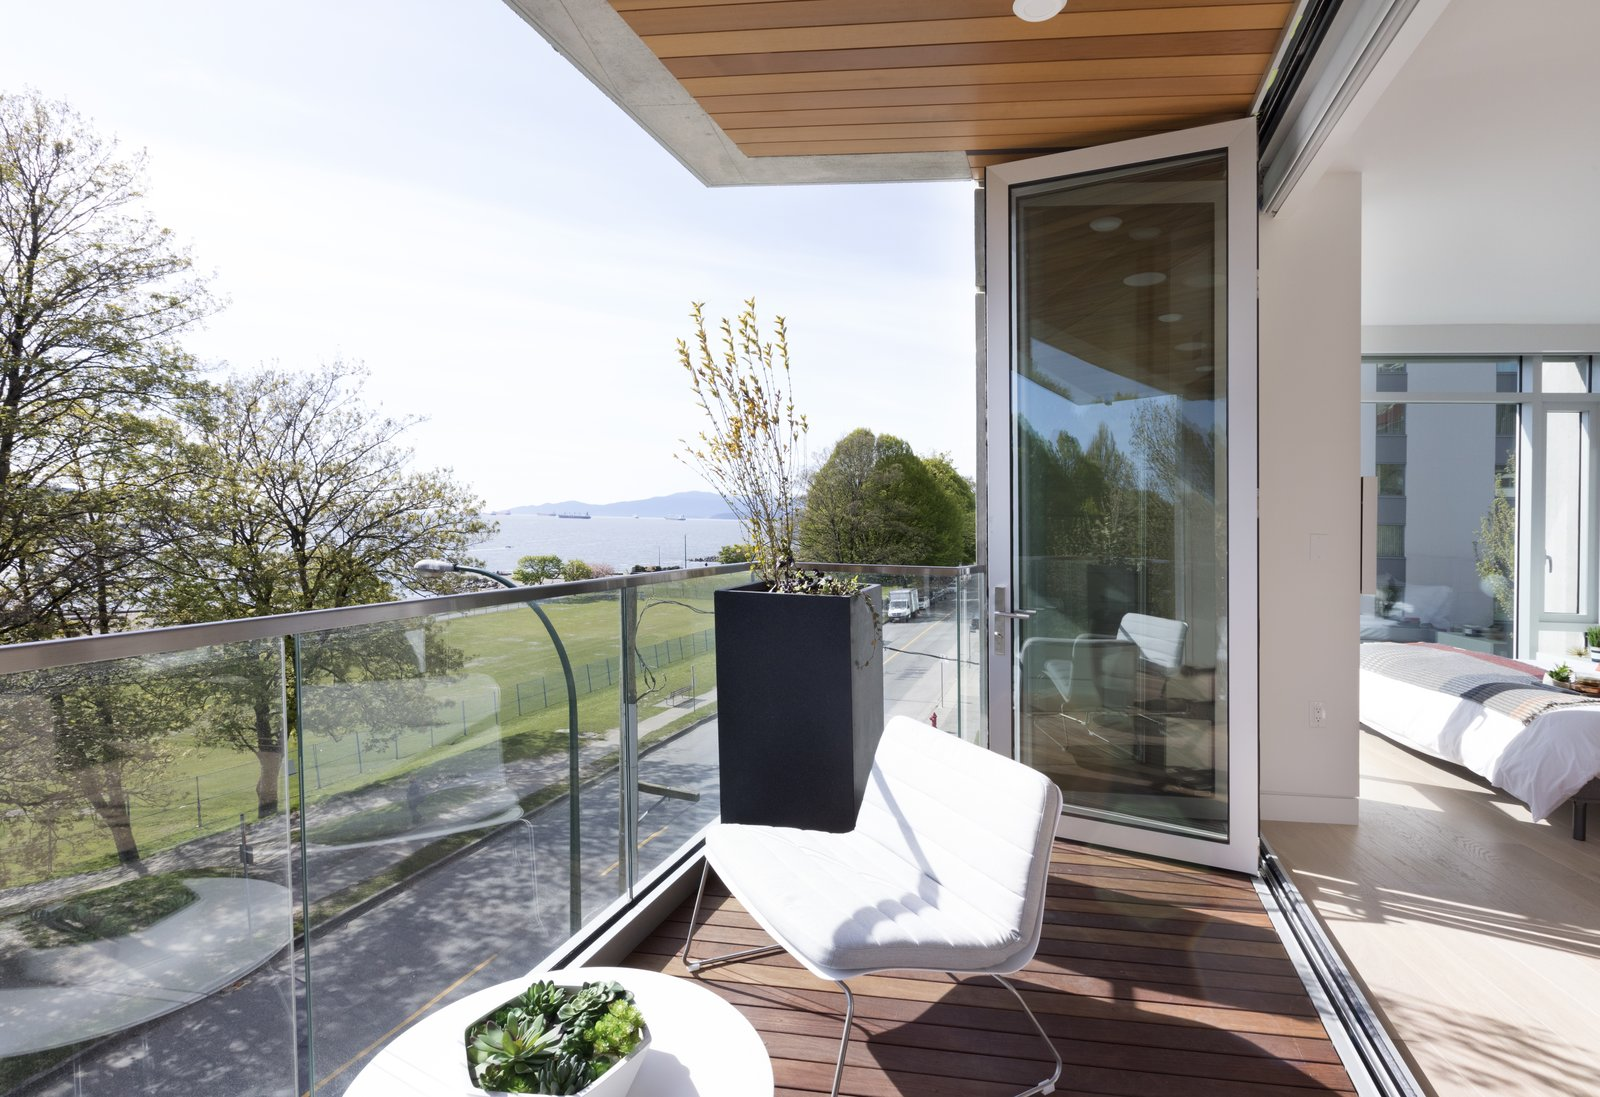 Outdoor and Large Patio, Porch, Deck Each interior is designed with white oak finish wide plank hardwood floors that span throughout spaces, complementing an open aesthetic.   Vancouver Features Ultra Luxury Rental at Eventide